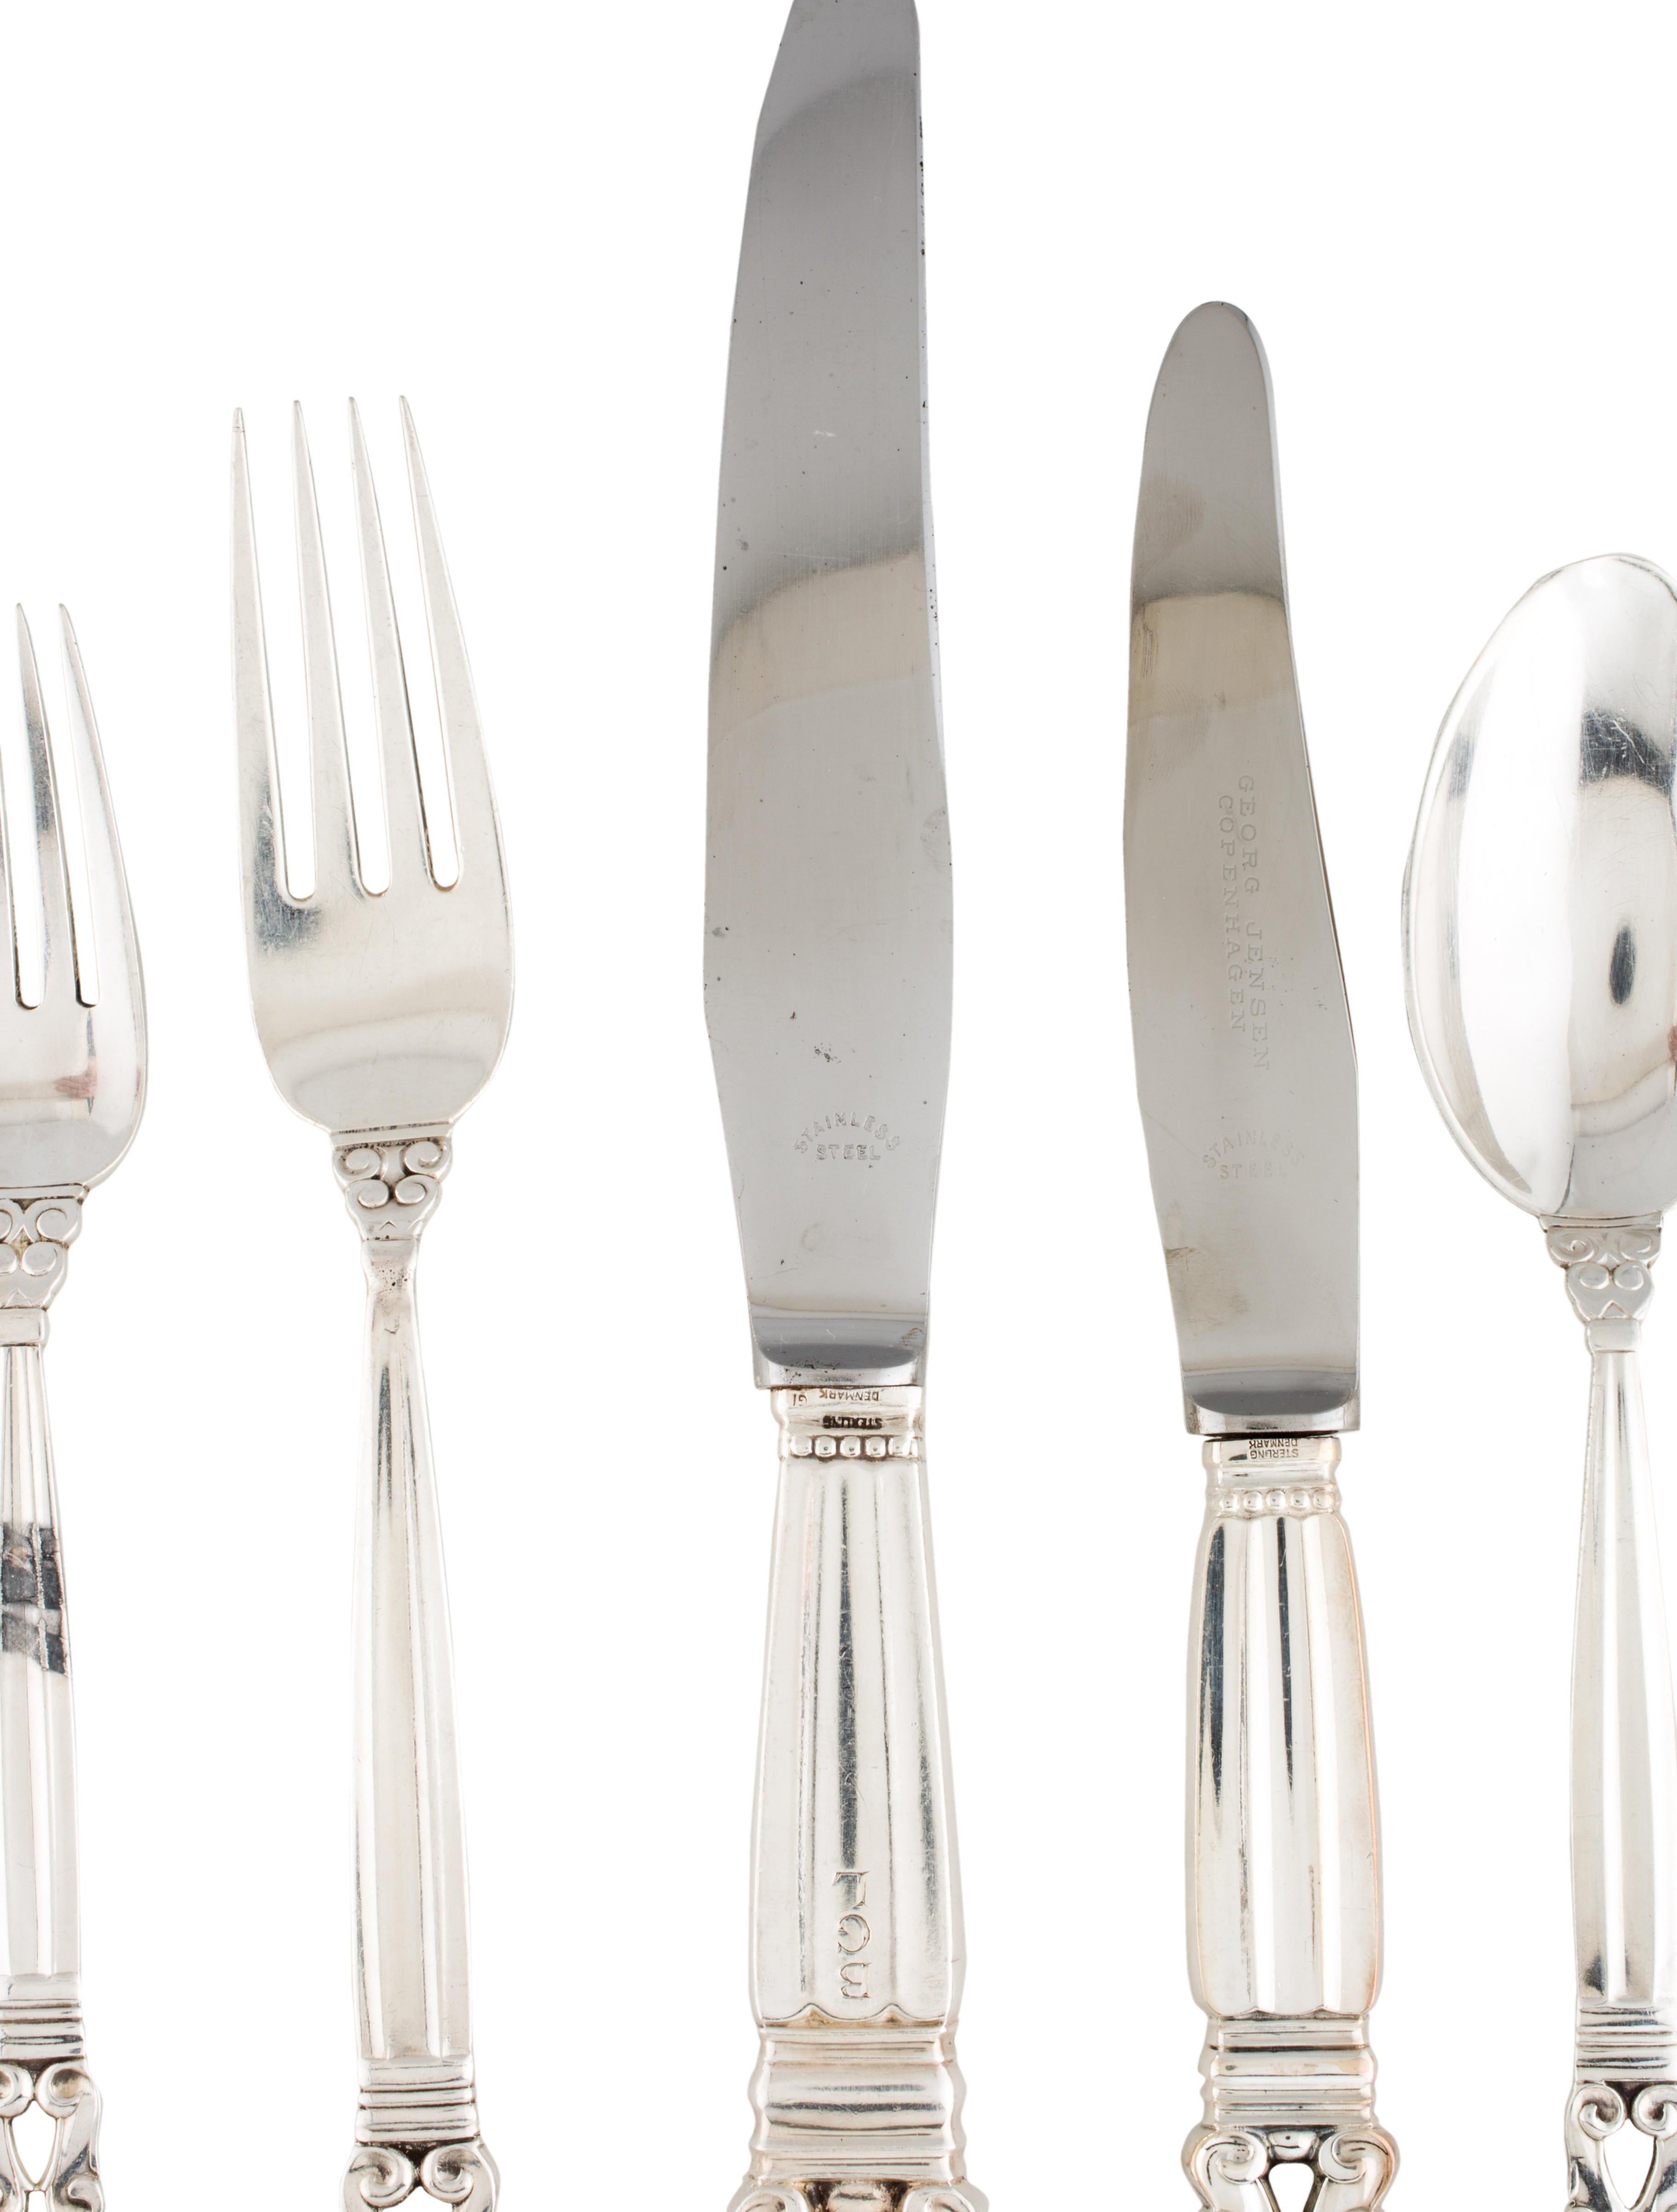 Georg Jensen Silverware Set Tabletop And Kitchen Gjj20152 The Realreal